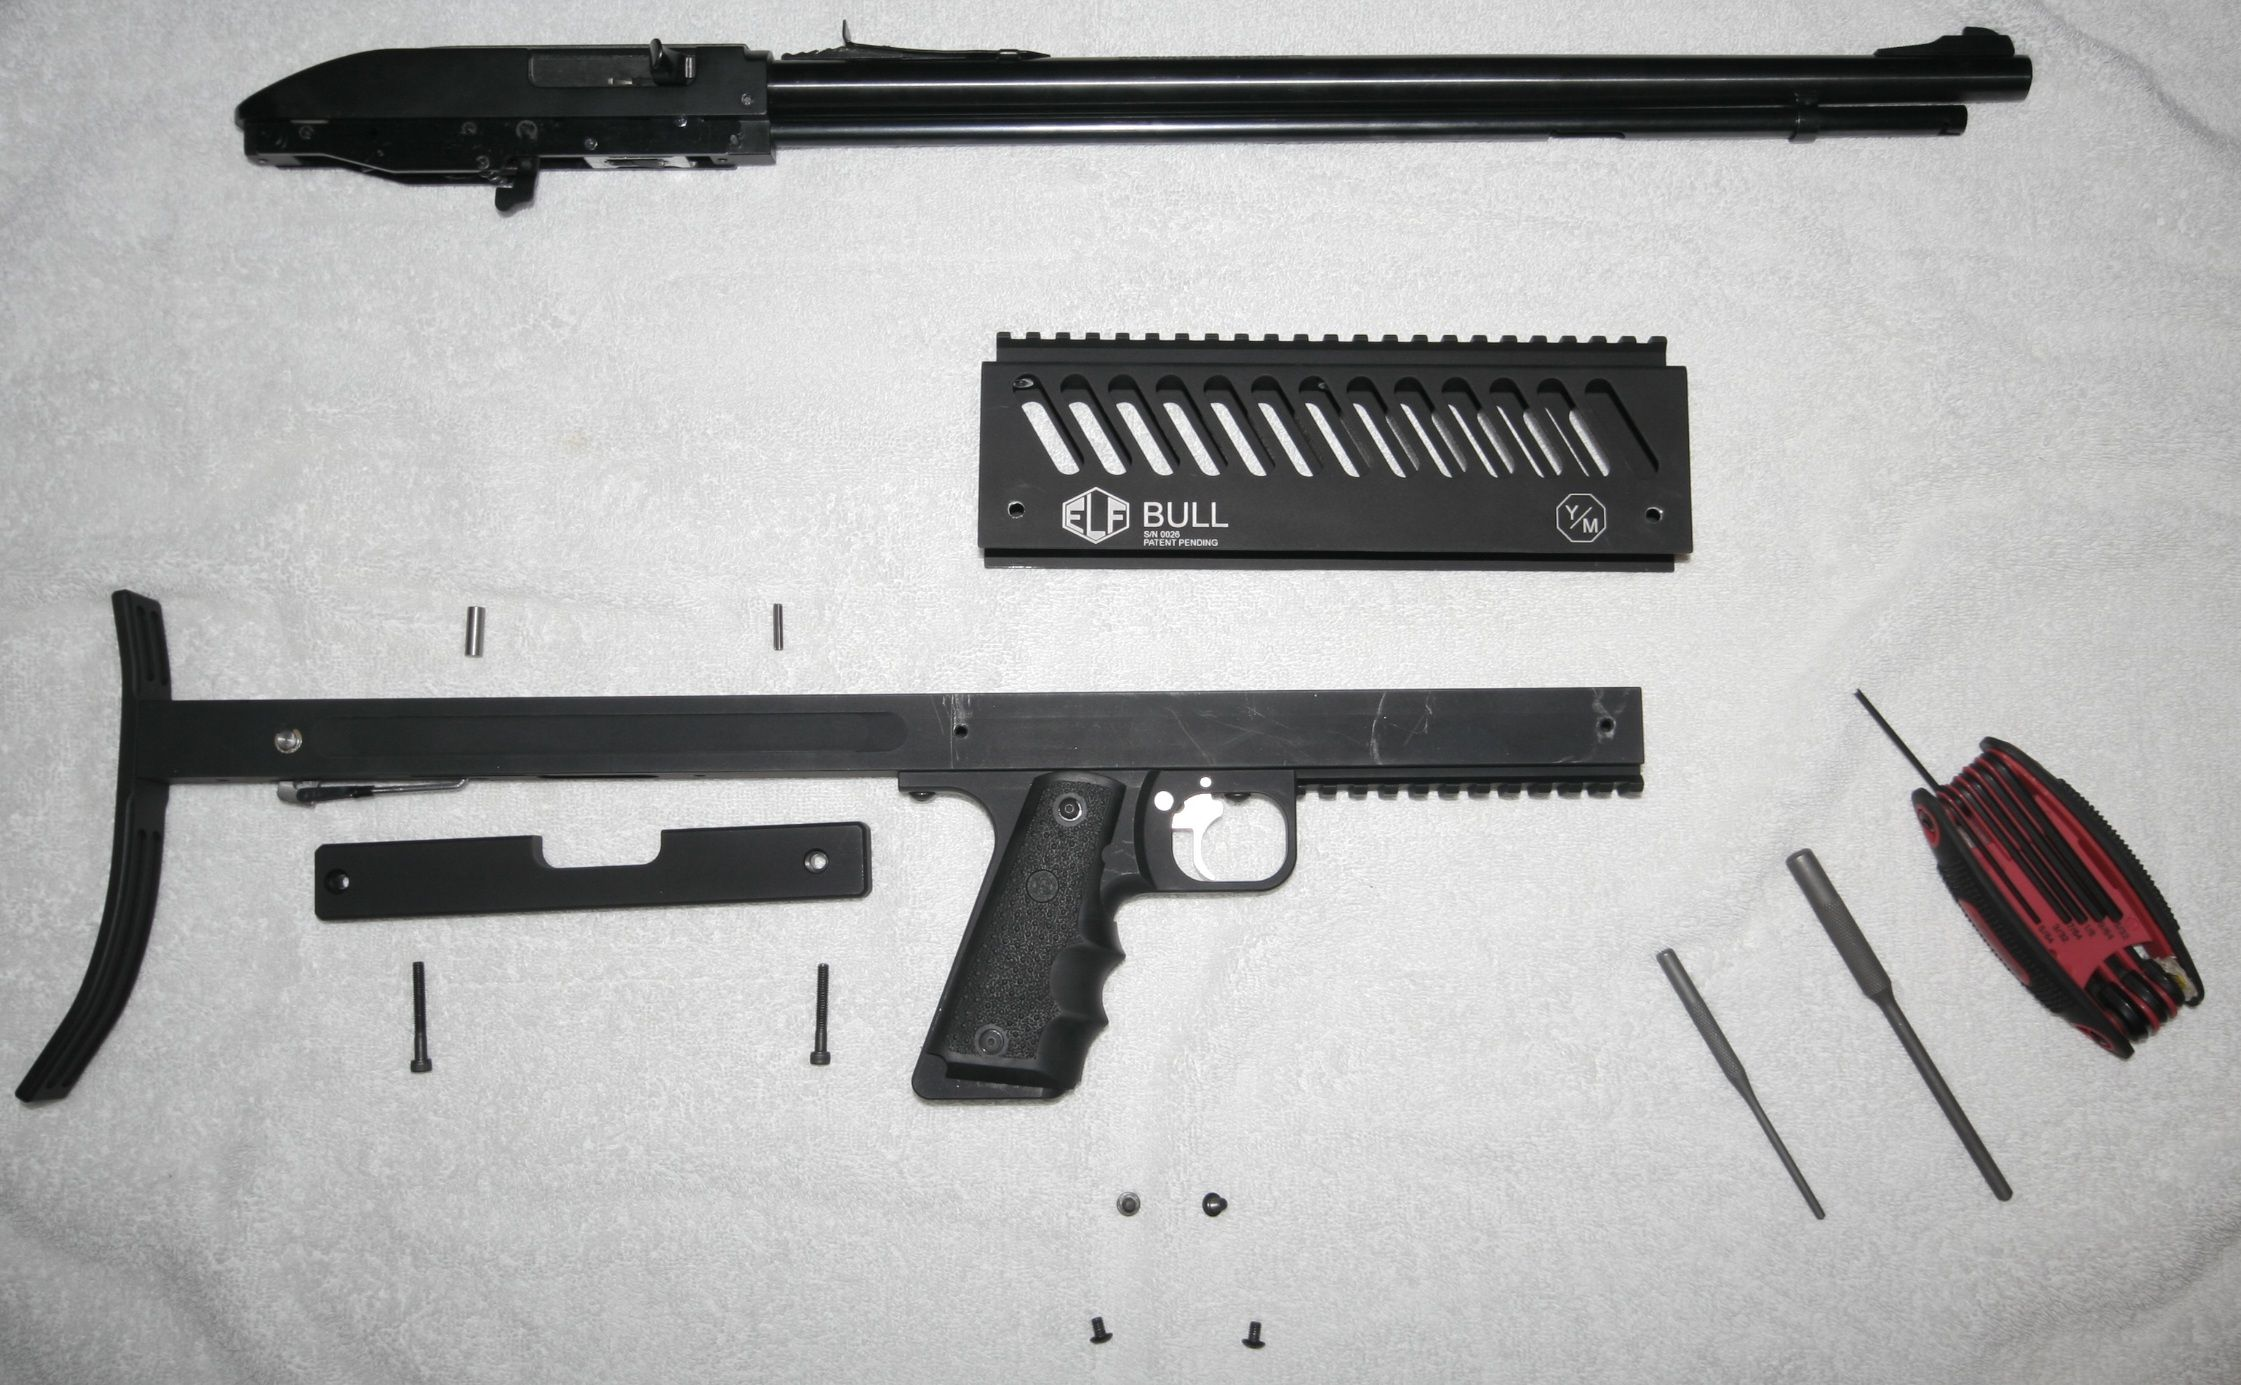 Elftmann disassembled